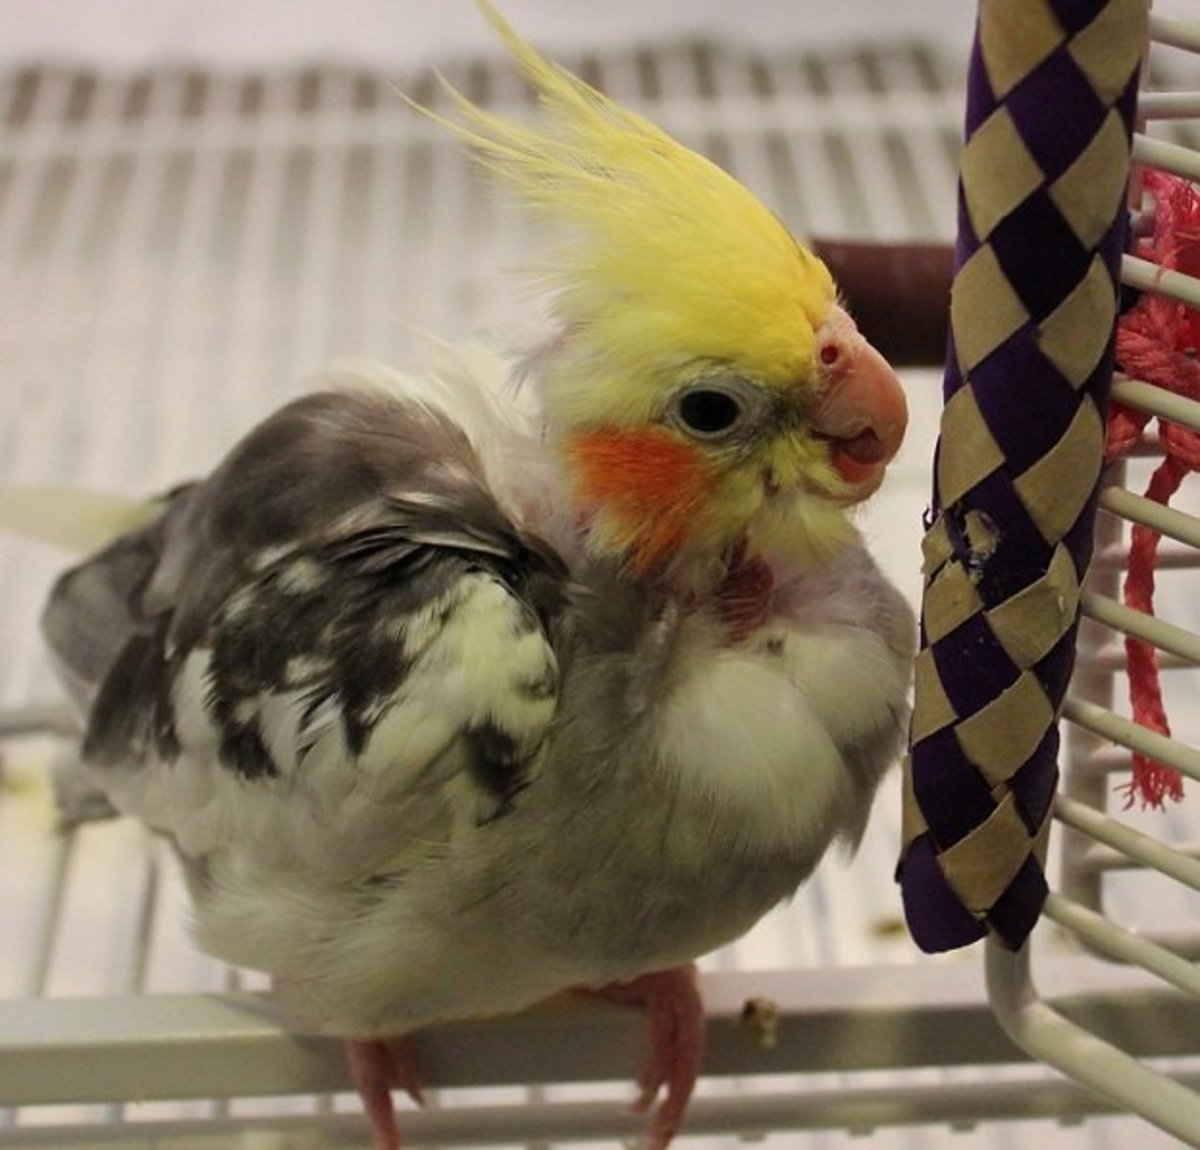 Buzzy, the author's rescued cockatiel. (notice that the cage door is open)